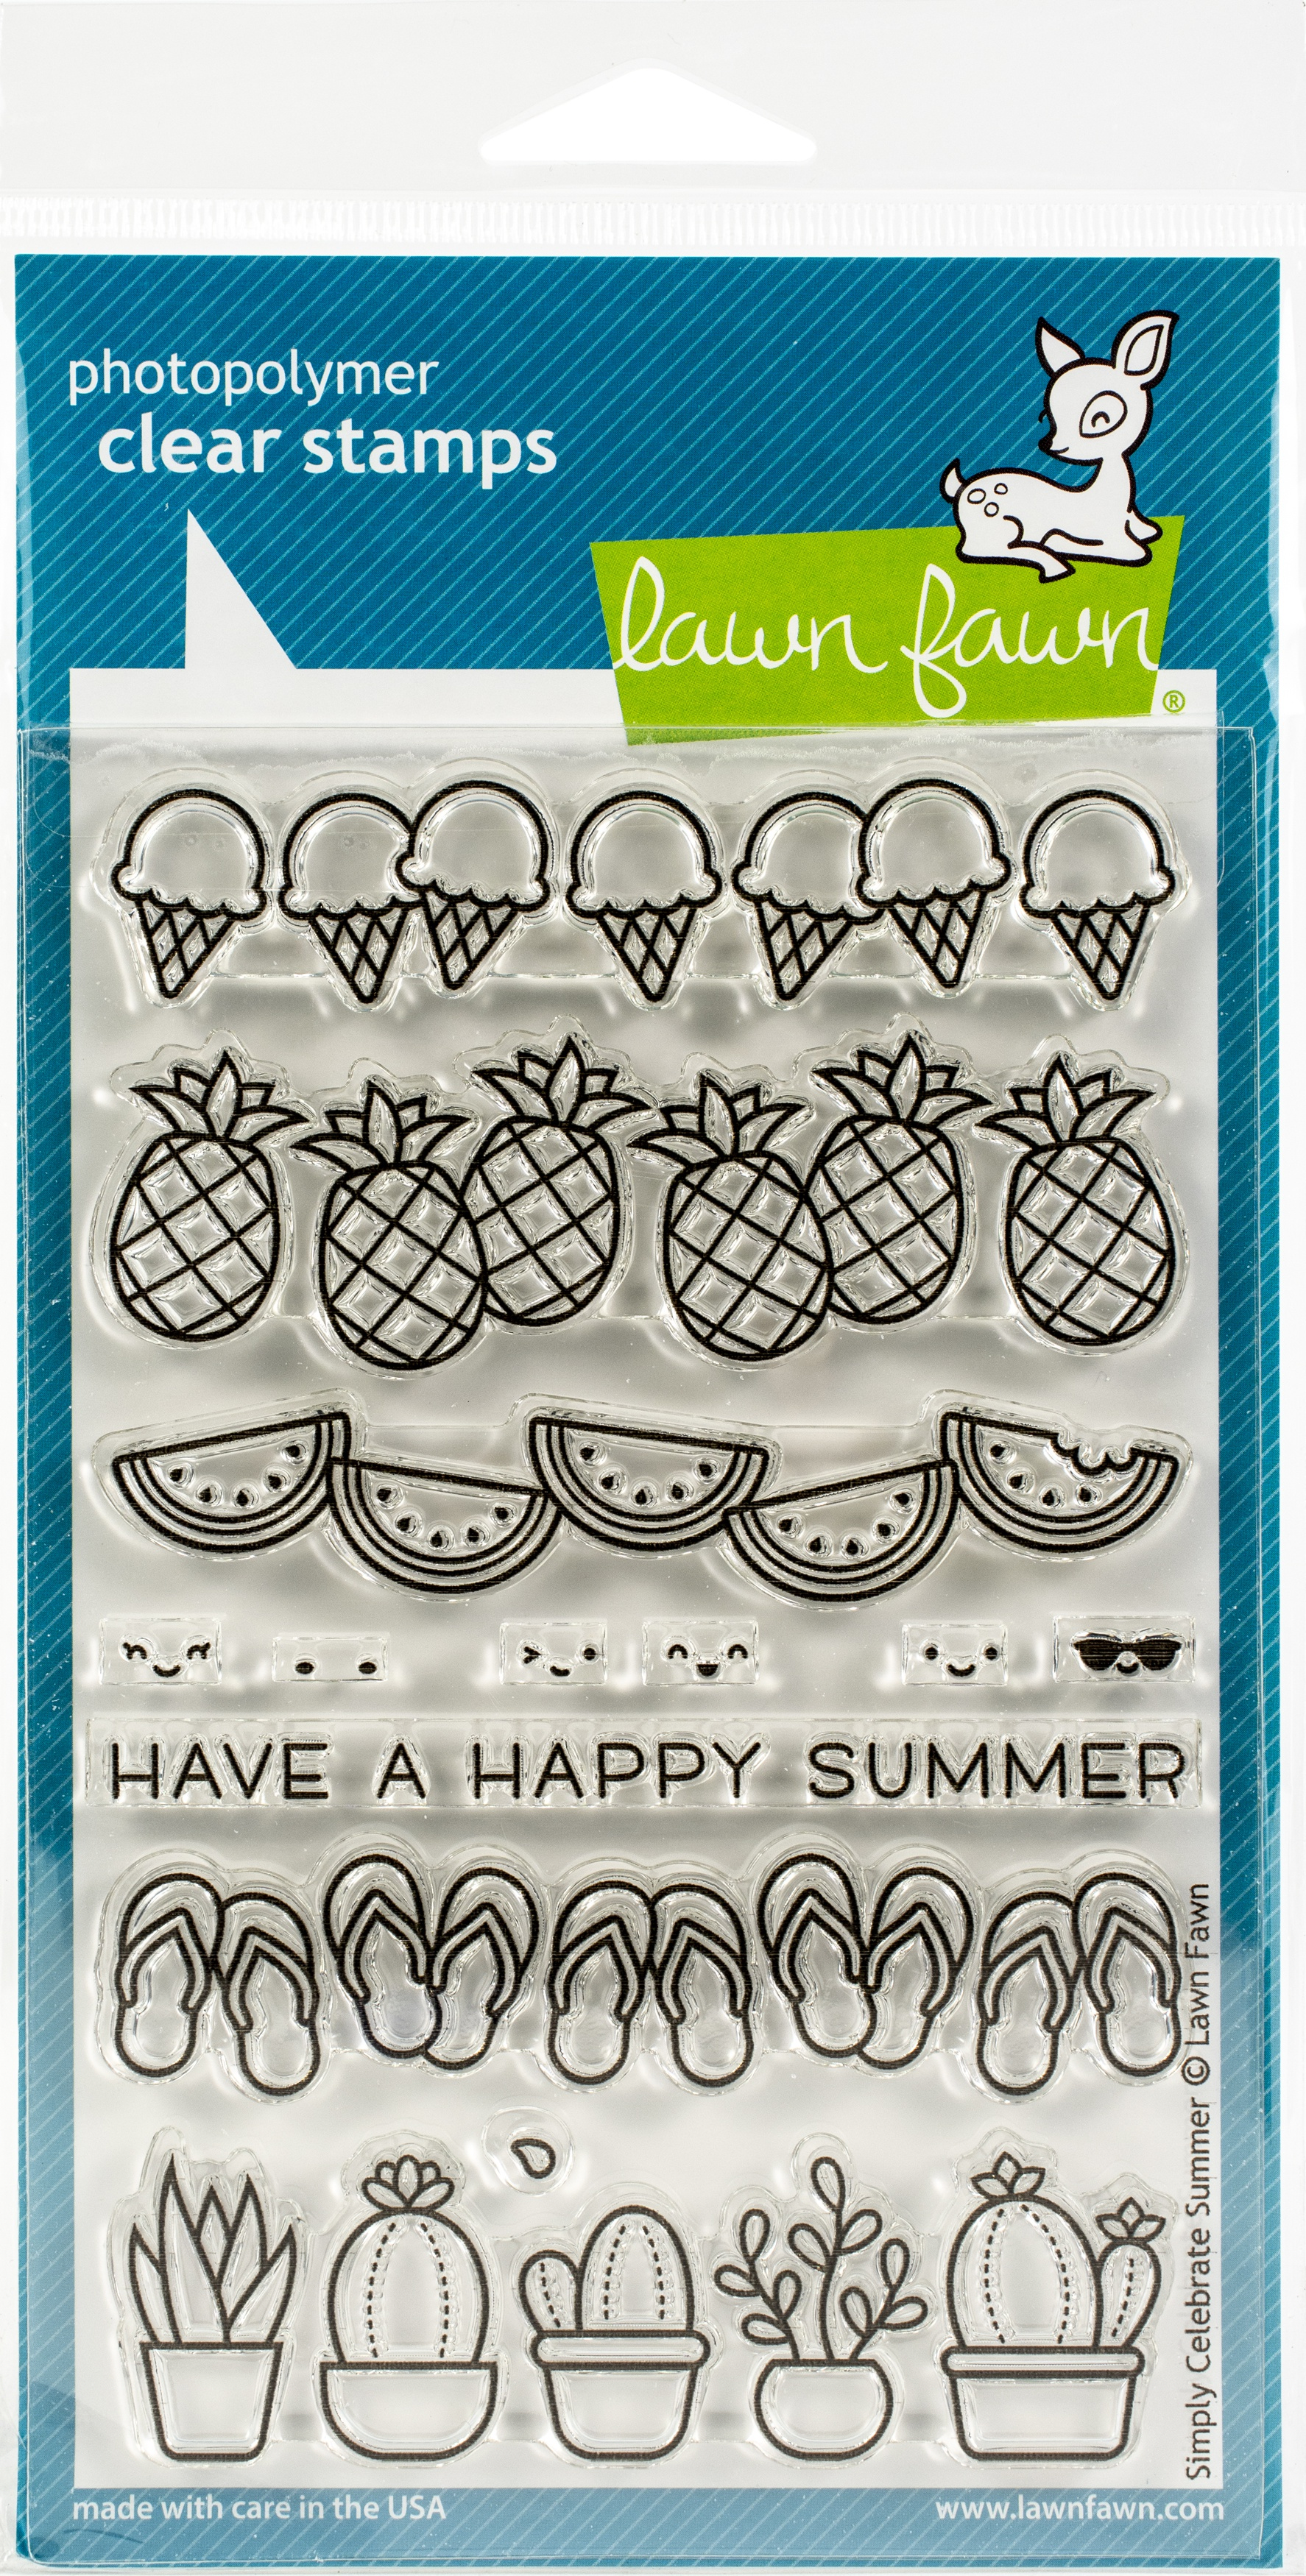 Lawn Fawn Clear Stamps 4X6-Simply Celebrate Summer